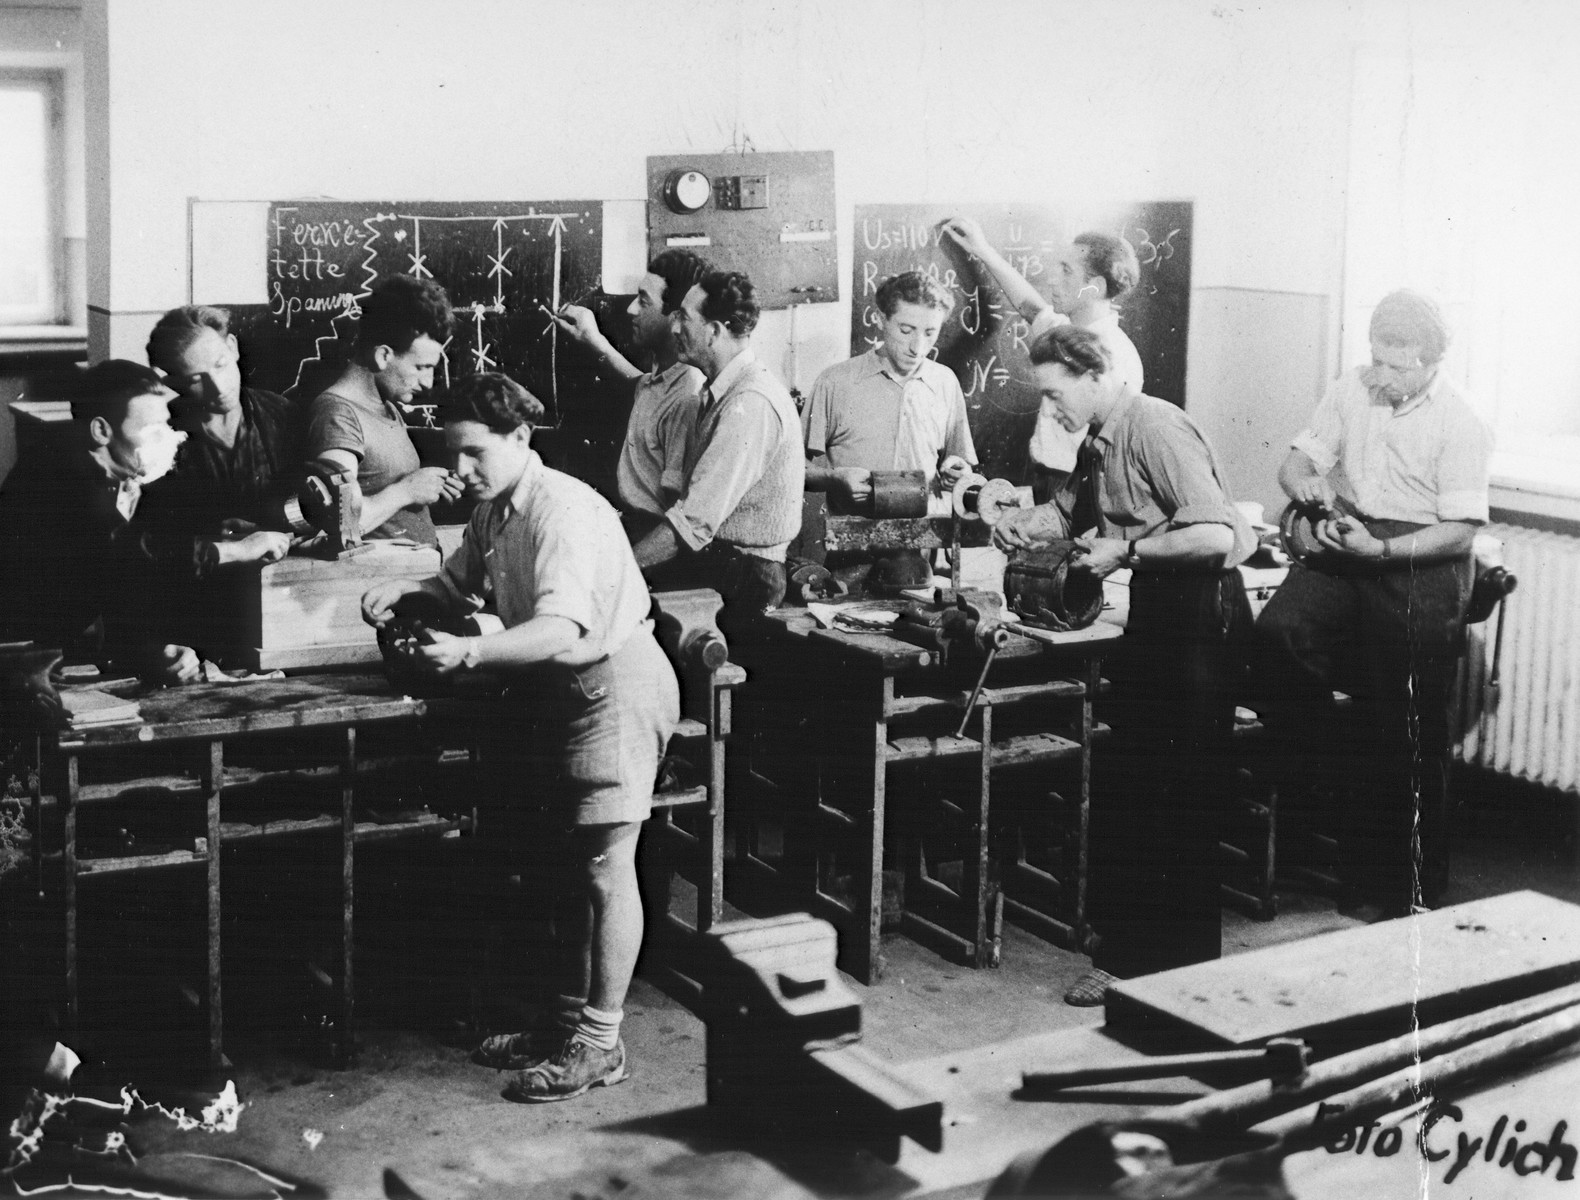 Jewish men participate in an ORT electrical motor winders training class in a machine workshop in the Feldafing displaced persons camp.  Pictured third from the left is Jacob Horowitz.